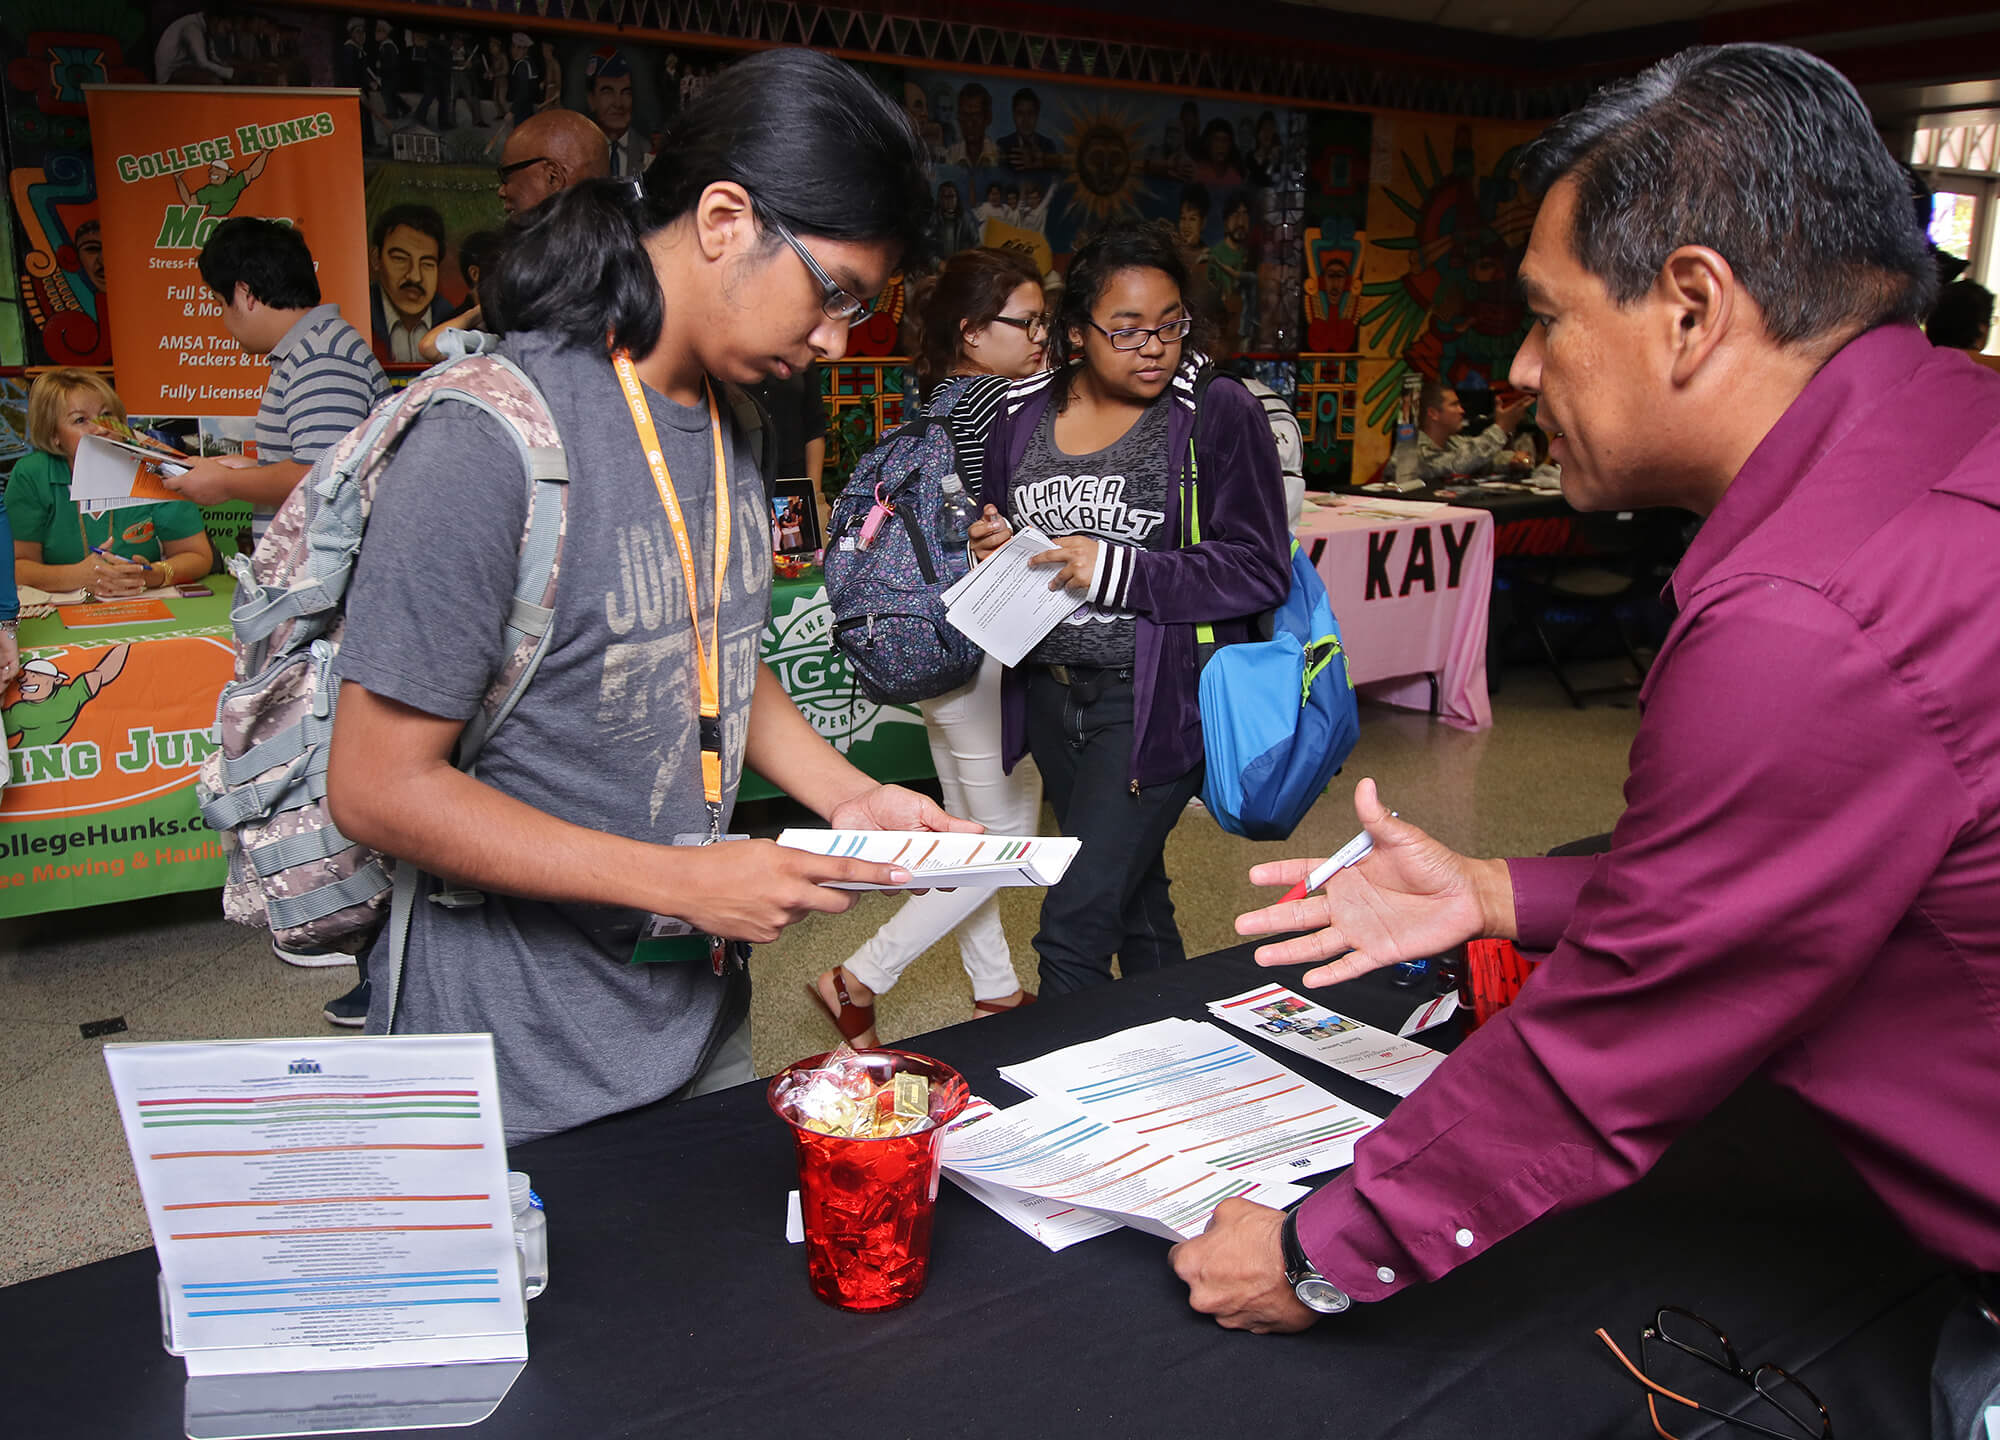 Computer science freshman Robert Ramirez reviews hiring information from Morningside Ministries Senior Living Communities Oct. 20, 2015, during a career fair in the Fiesta Room of Loftin. About 40 company representatives were present. Students turned in raffle tickets with employer signatures from each company for a chance to win a goodie basket including giftcards for JC Penny, Whataburger and The Cheesecake Factory. File